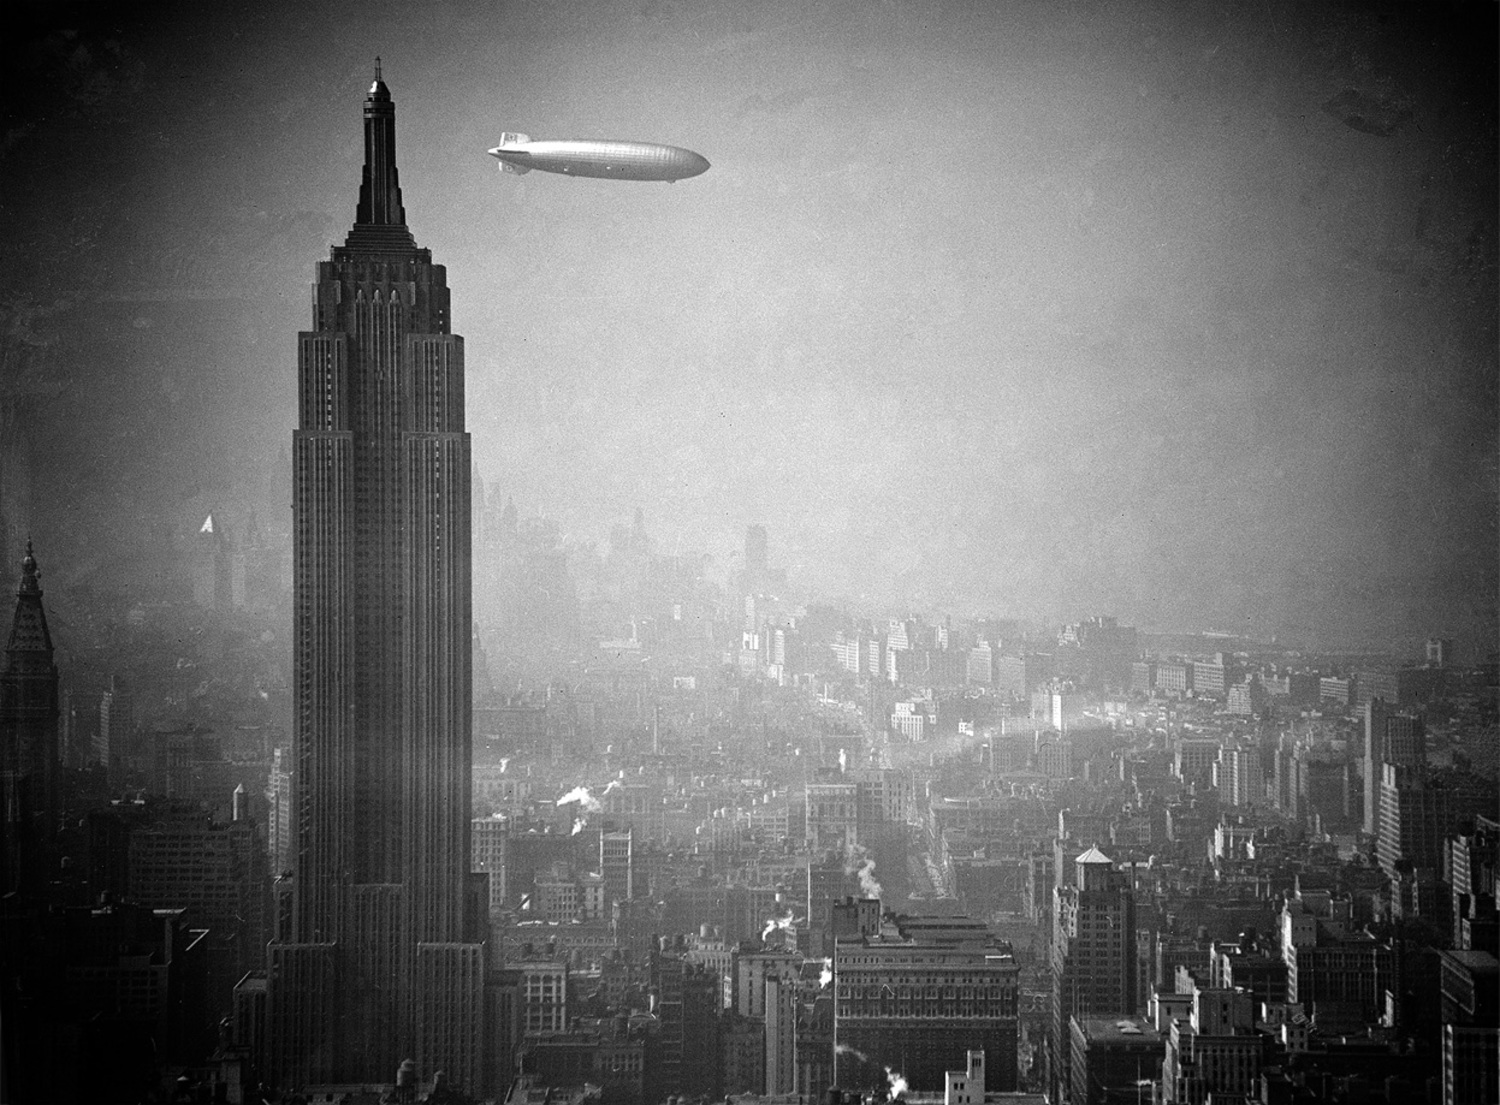 The Hindenburg flies past the Empire State Building over Manhattan on August 8, 1936, en-route to Lakehurst, New Jersey, from Germany.